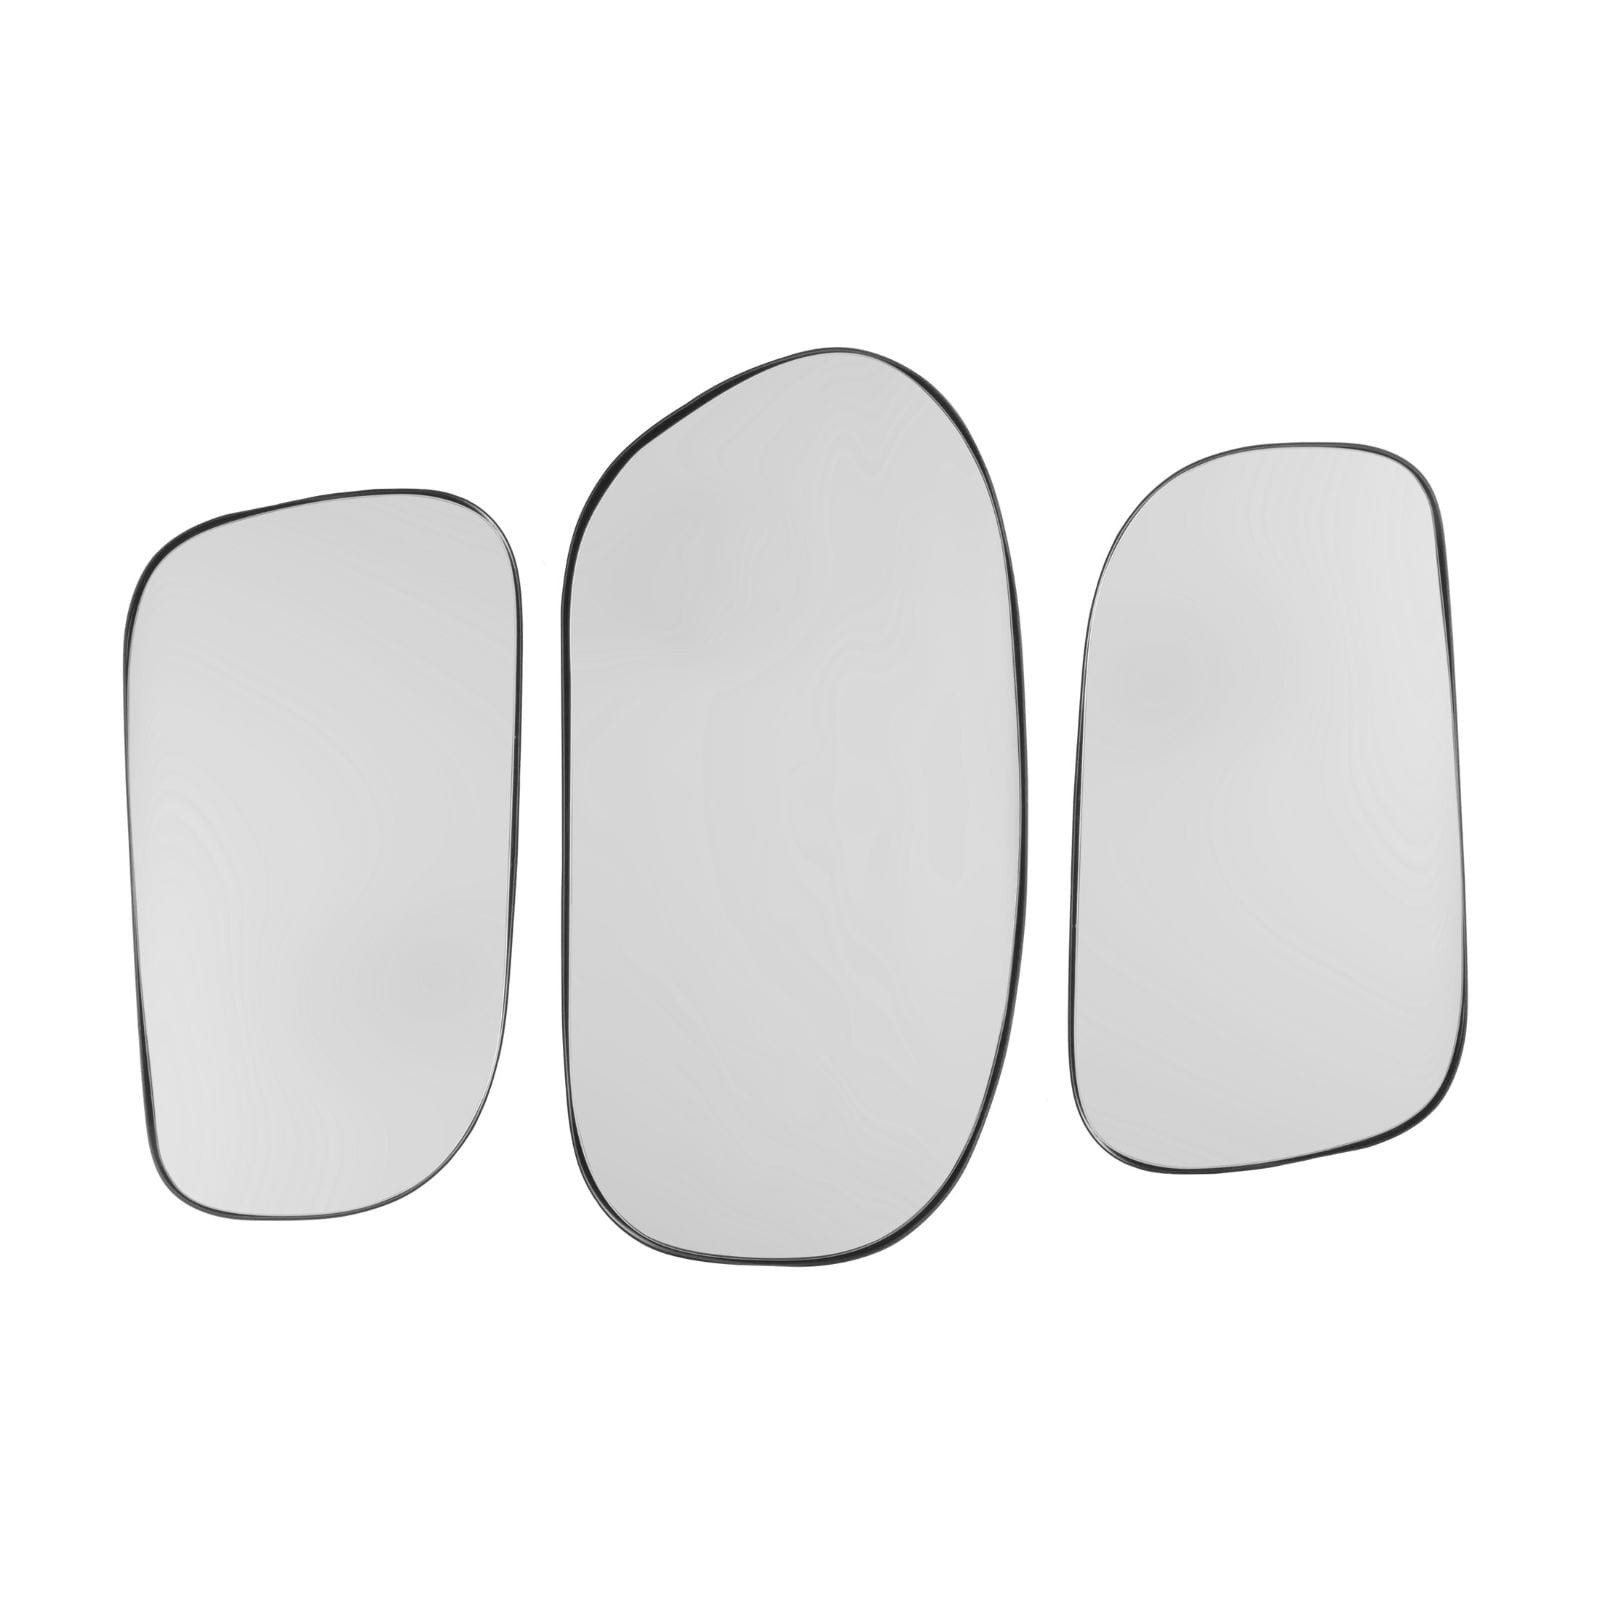 Concord Mirrors Set of 3 (Black / Silver) - Present Time